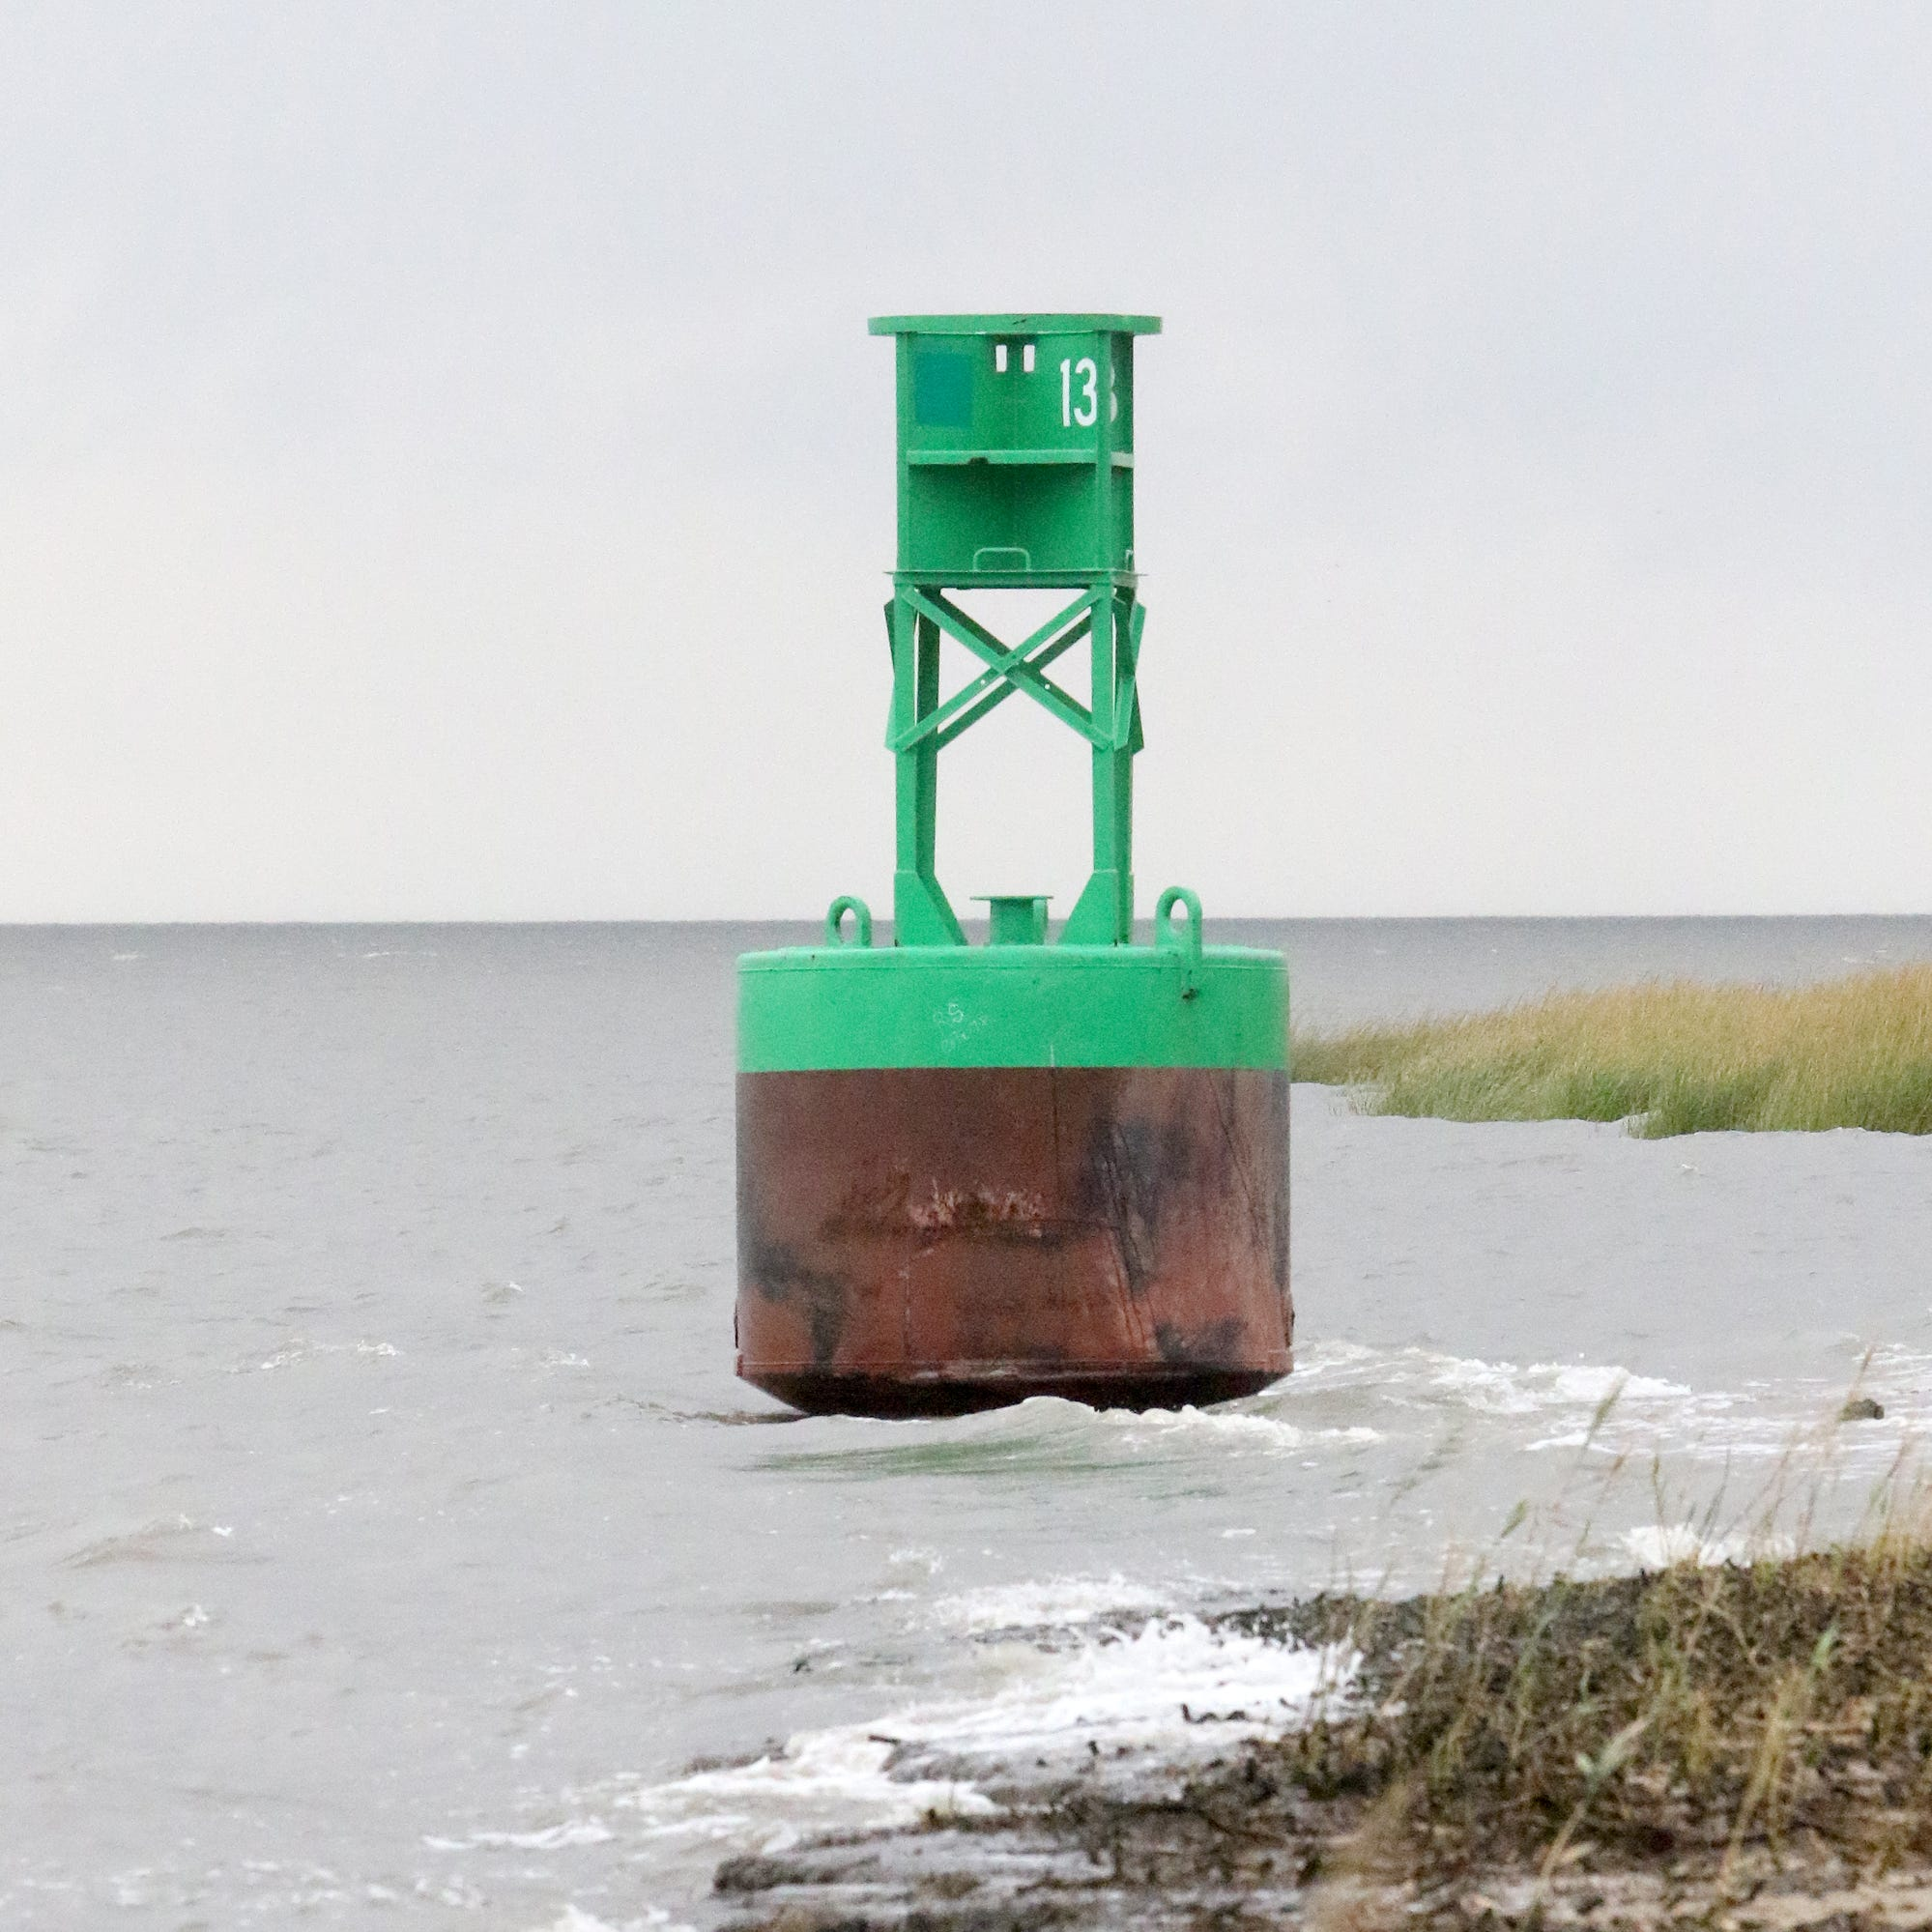 Unlucky 'Buoy 13' stranded on Woodland Beach and visitors love it